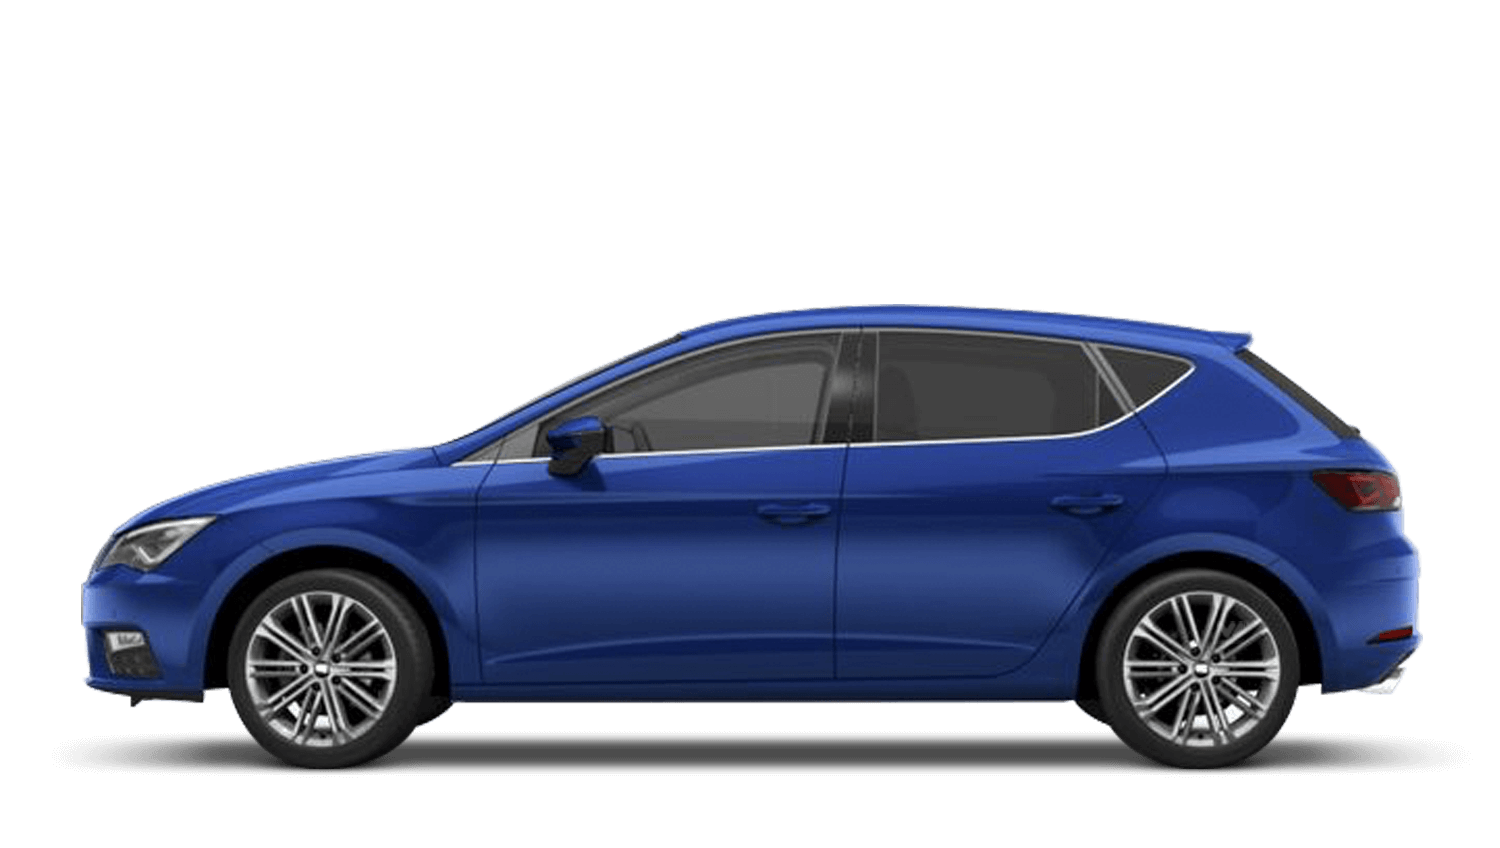 Mystery Blue (Metallic) SEAT Leon 5 Door